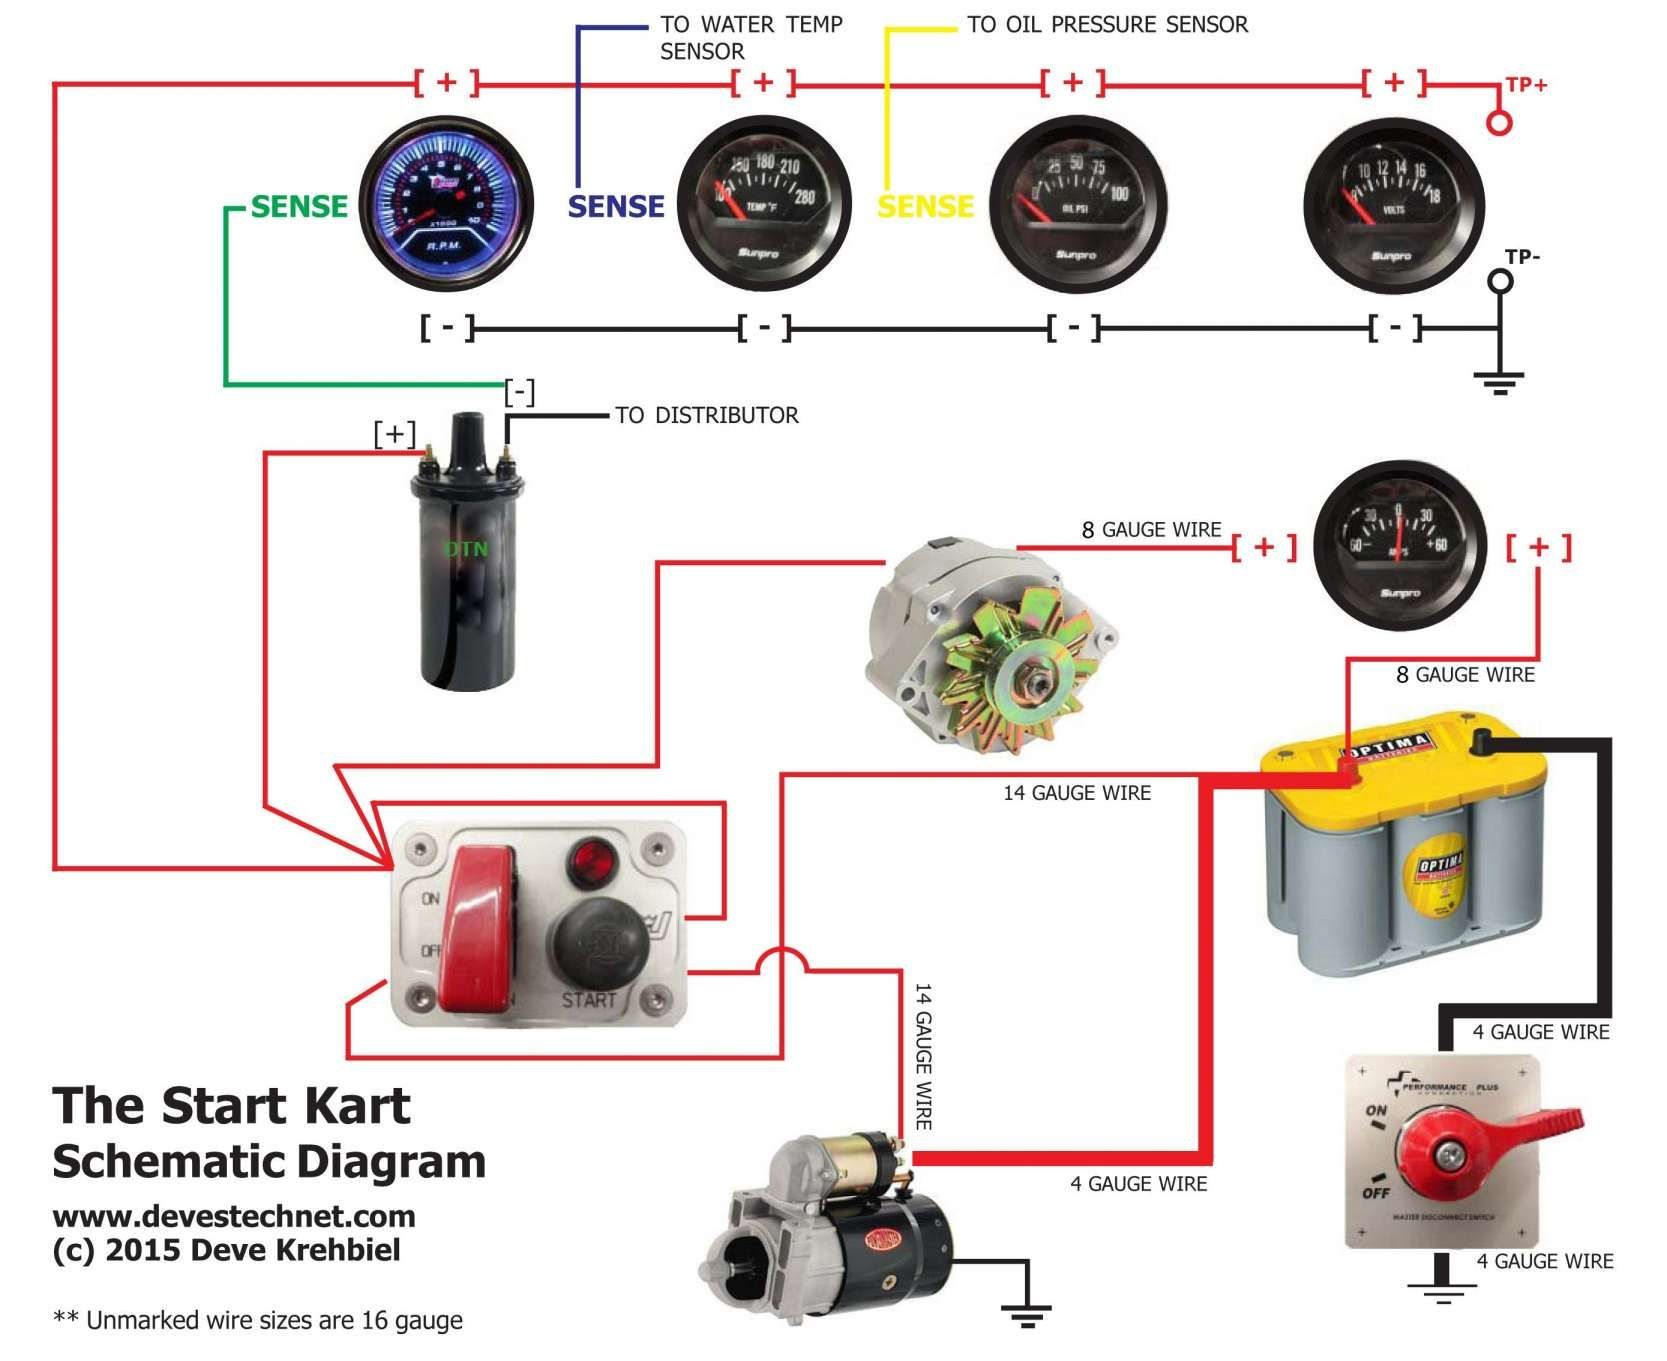 15 Engine Stand Wiring Diagram Engine Diagram Wiringg Net In 2020 Car Gauges Engine Stand Electrical Diagram